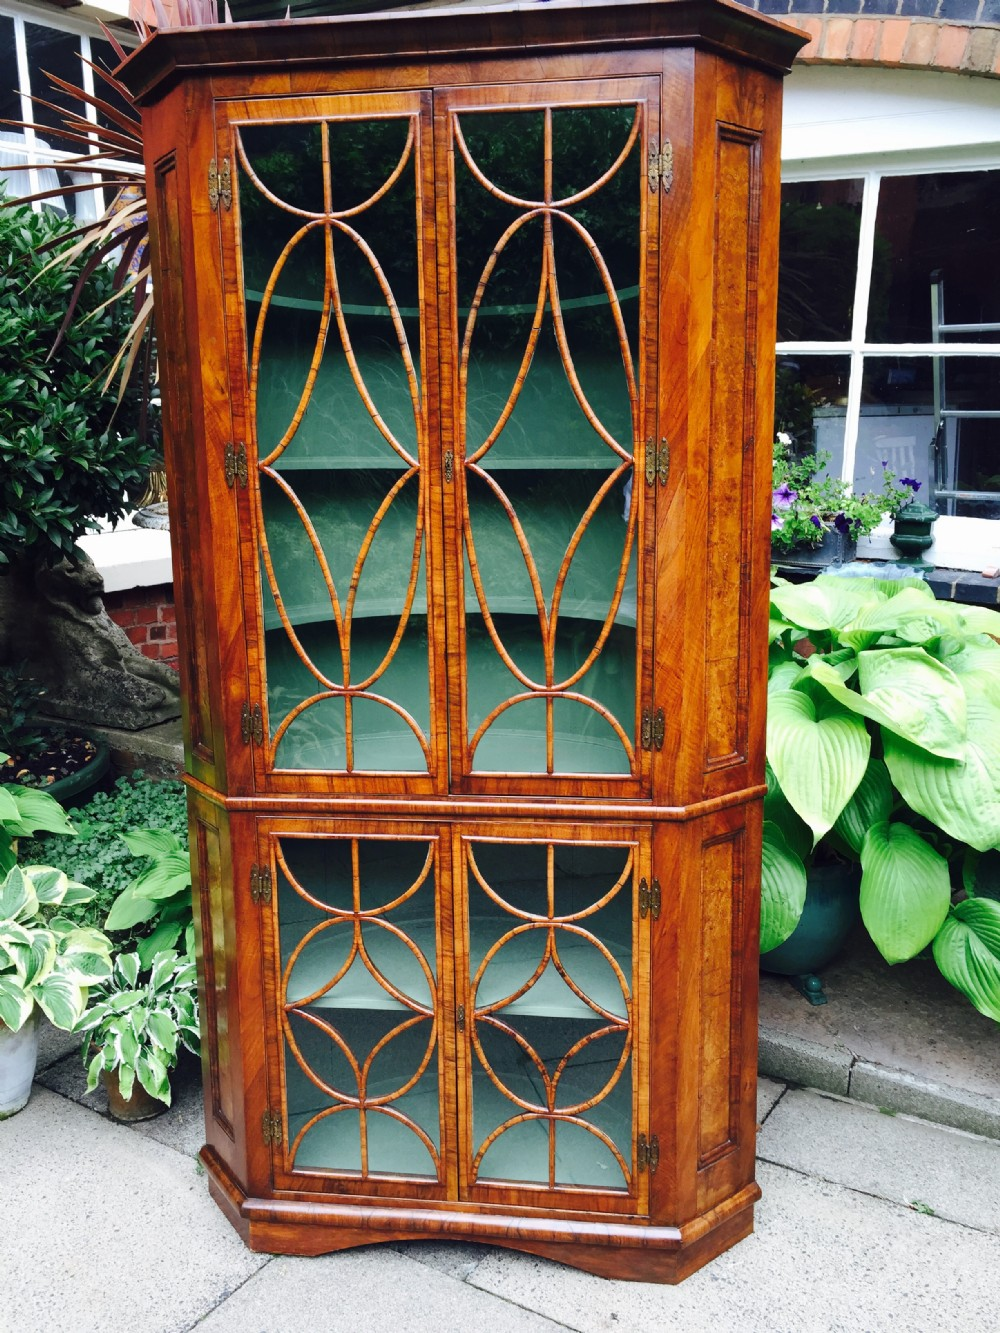 c19th george i revival walnut double cornercabinet with ovoid and diamond interlaced glazing